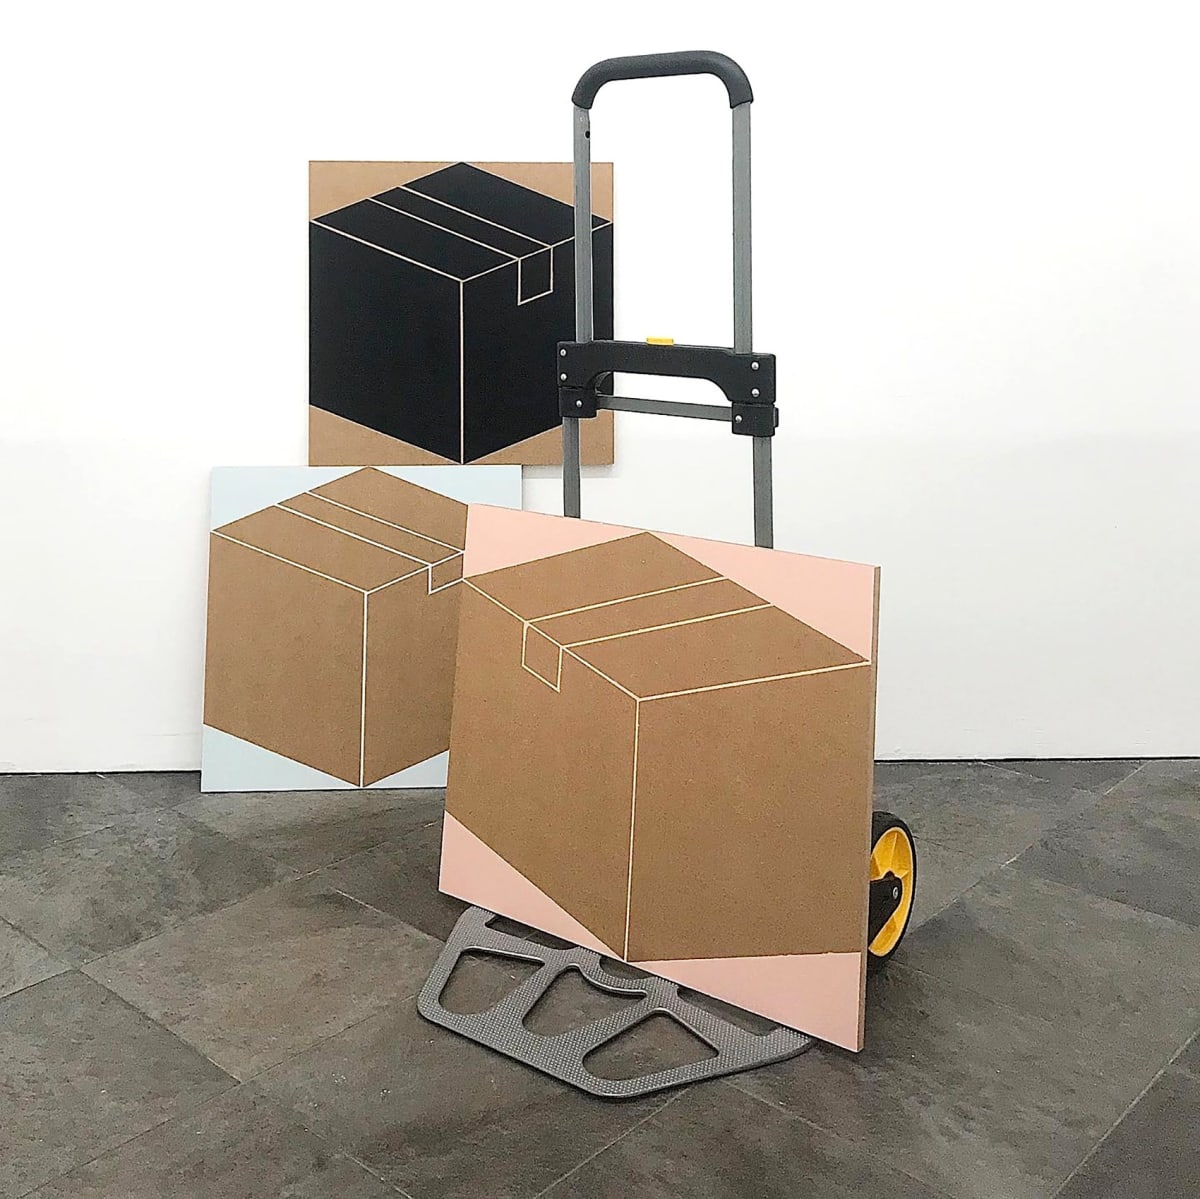 Image shows trolley holding three artworks from contemporary artist Siggi Hofer